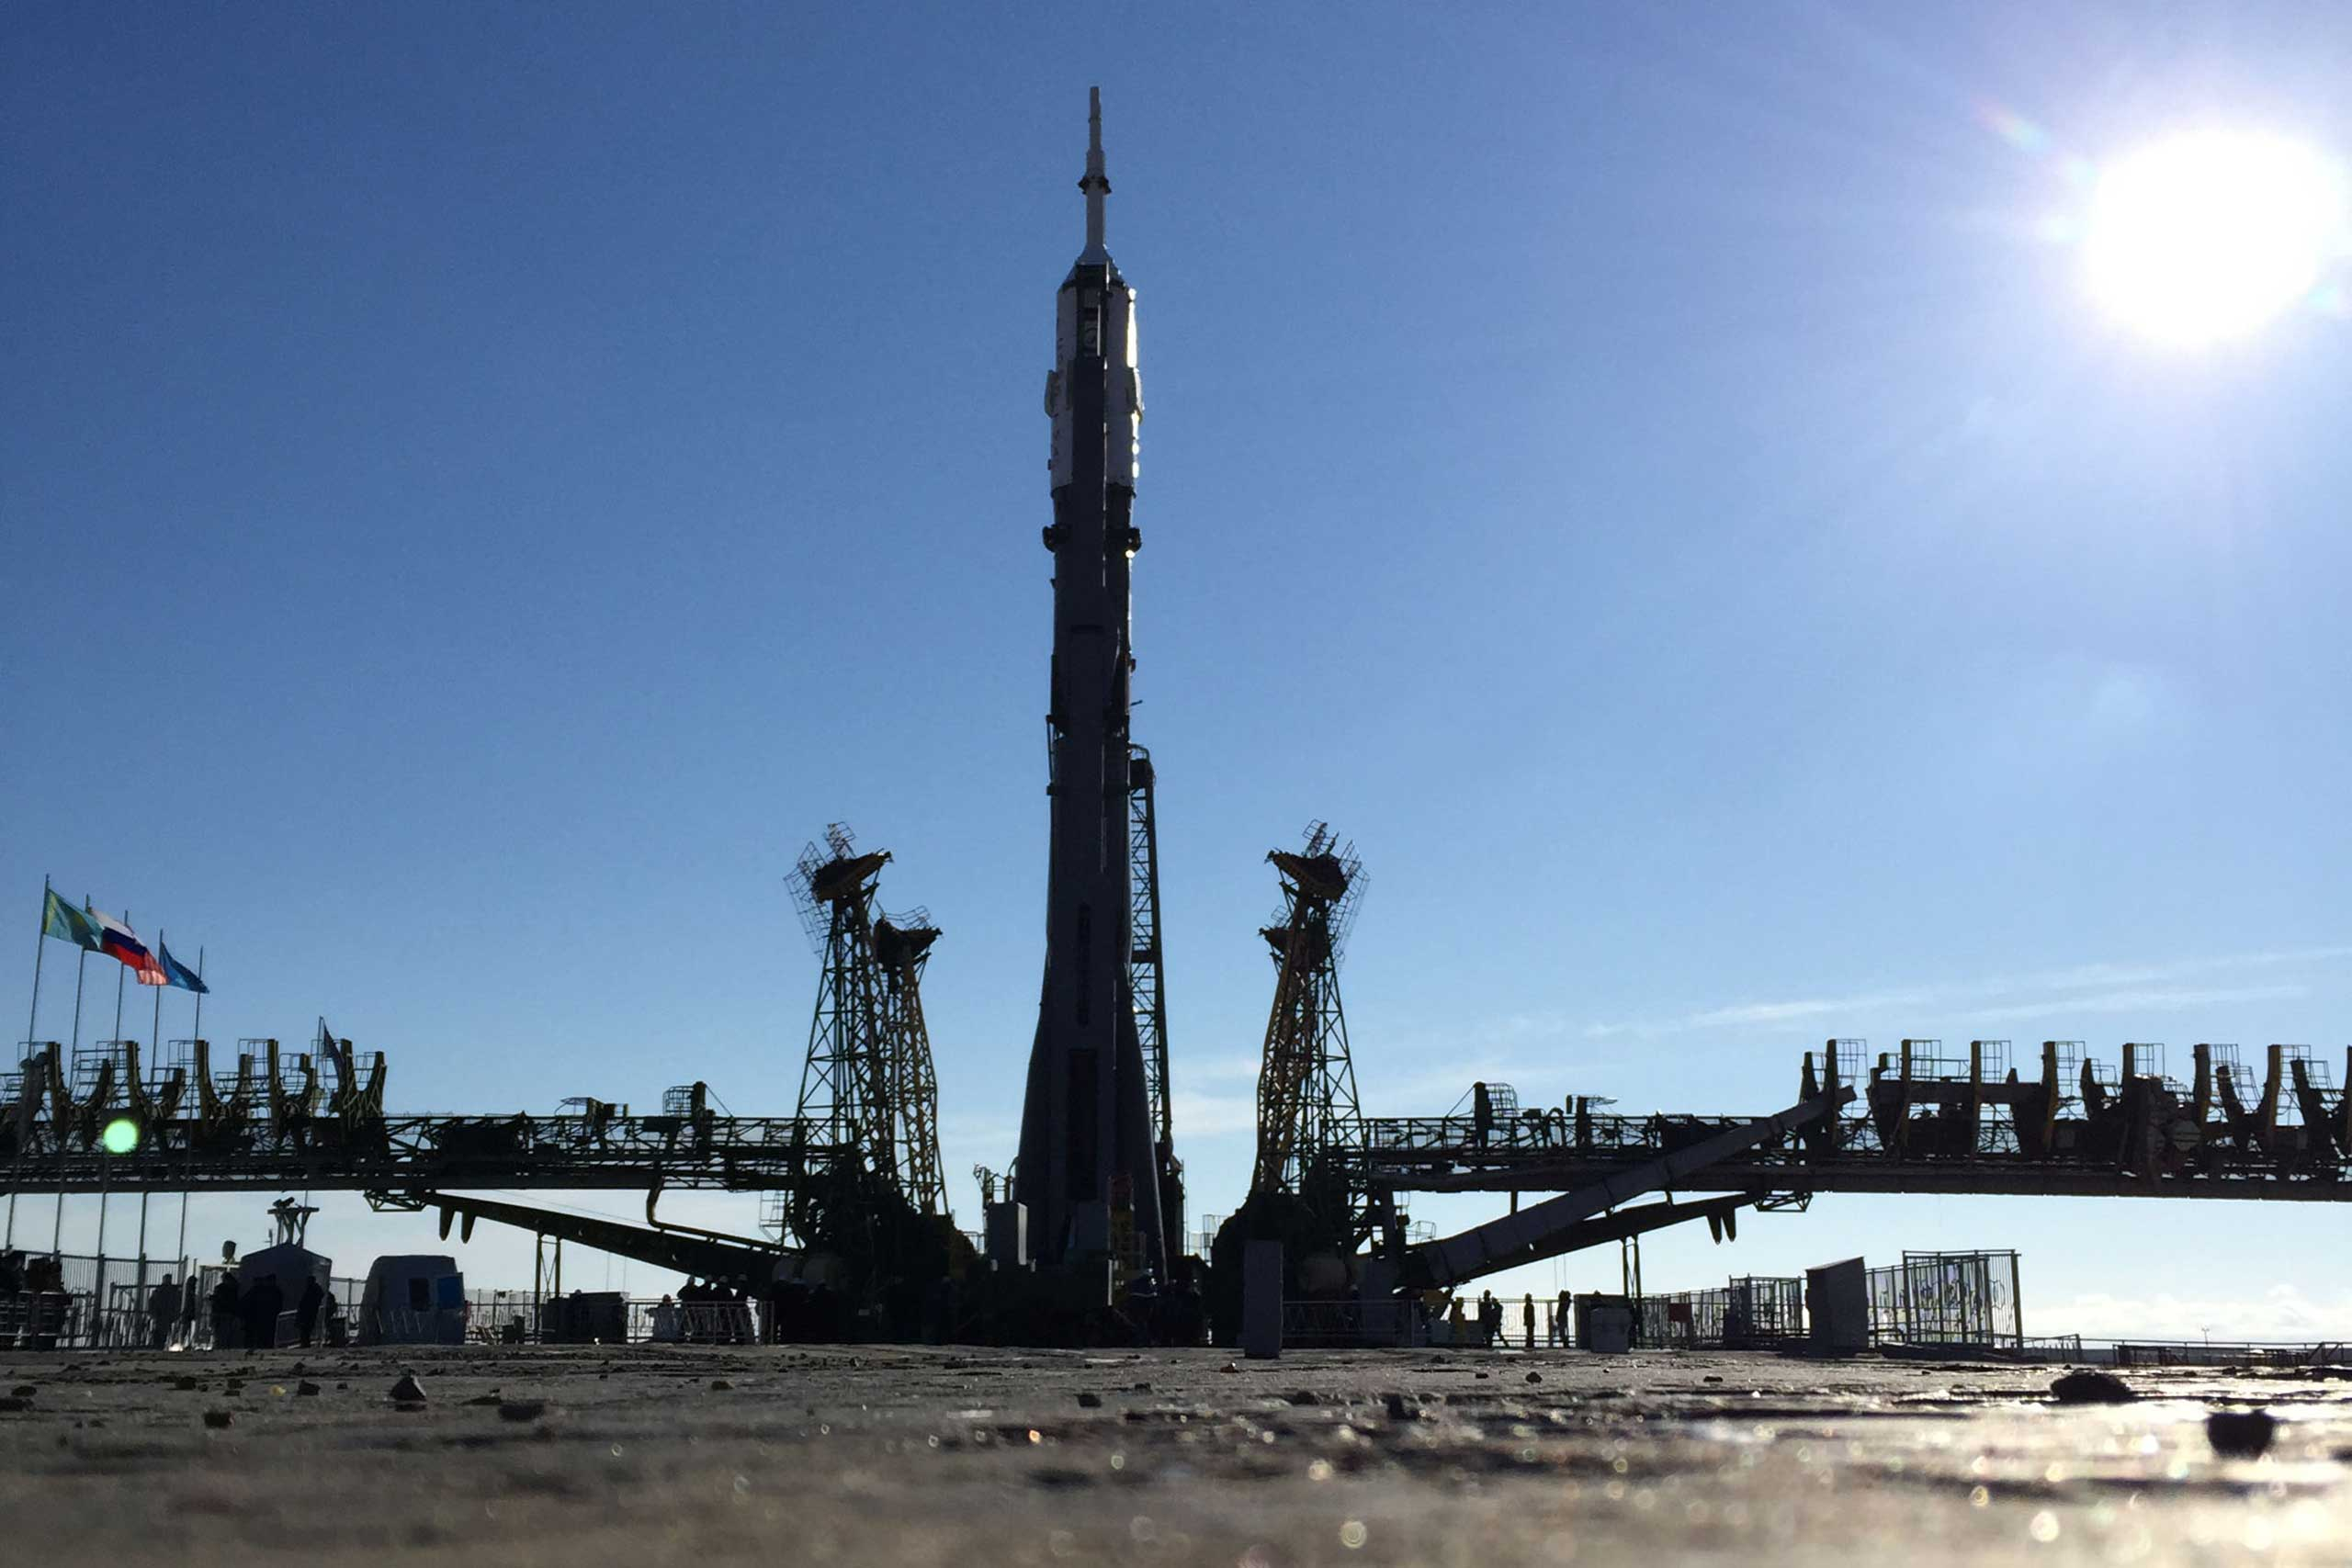 The Soyuz stands upright after being raised at the Baikonur Cosmodrome in Kazakhstan on Wednesday, March 25. The rocket will launch Friday, beginning a yearlong stay aboard the ISS by Scott Kelly and Mikhail Kornienko.